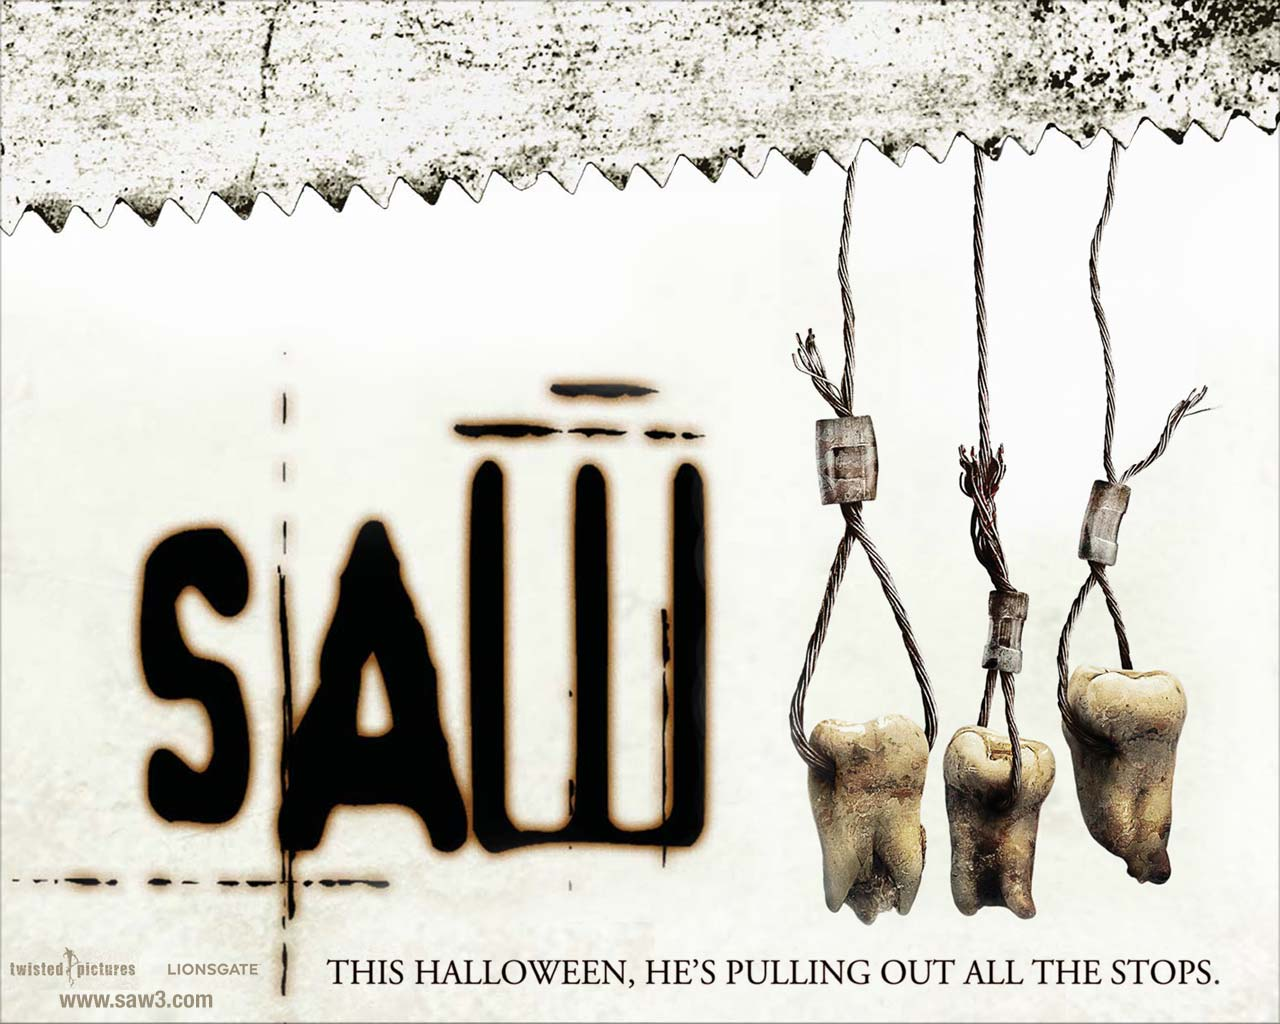 I Re-Watched The Entire Saw Series So You Don't Have To (Not